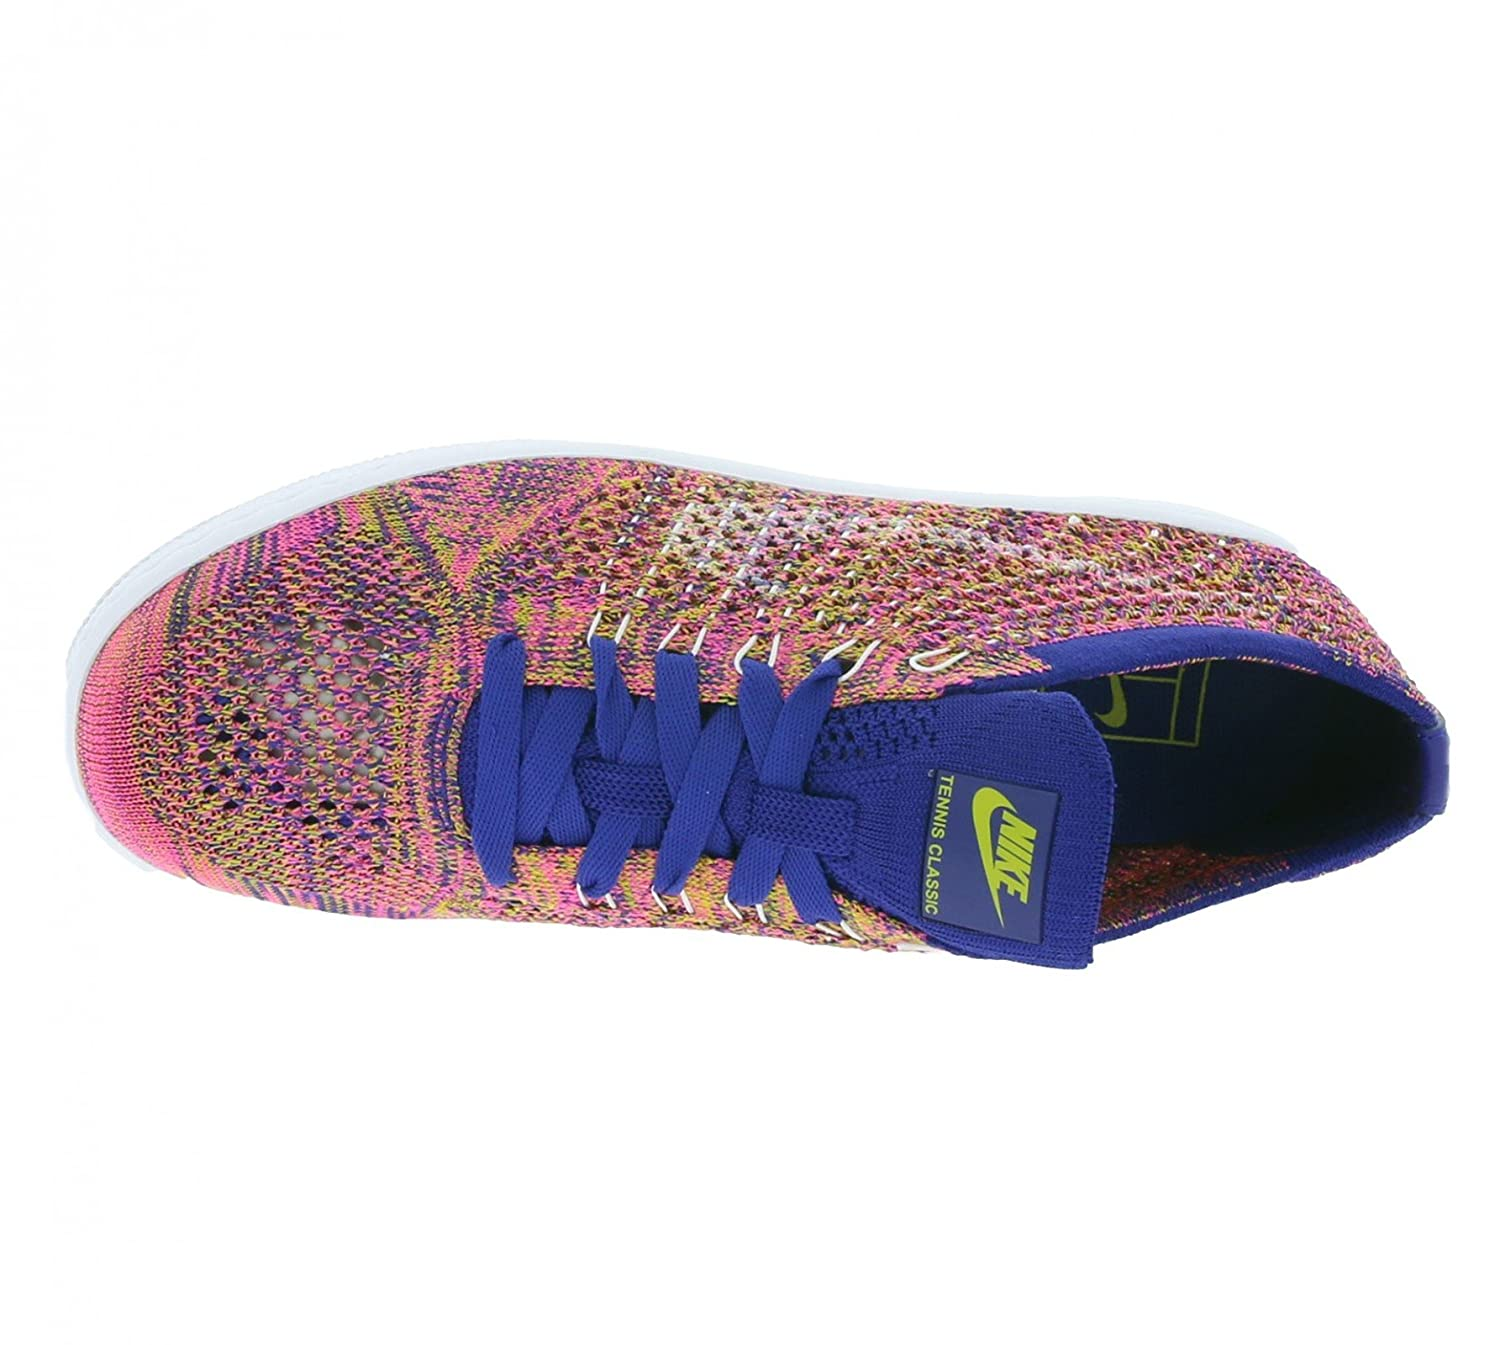 outlet store 2f55b d5e46 Amazon.com   Nike Tennis Classic Ultra Flyknit Womens Fashion-Sneakers  833860   Road Running